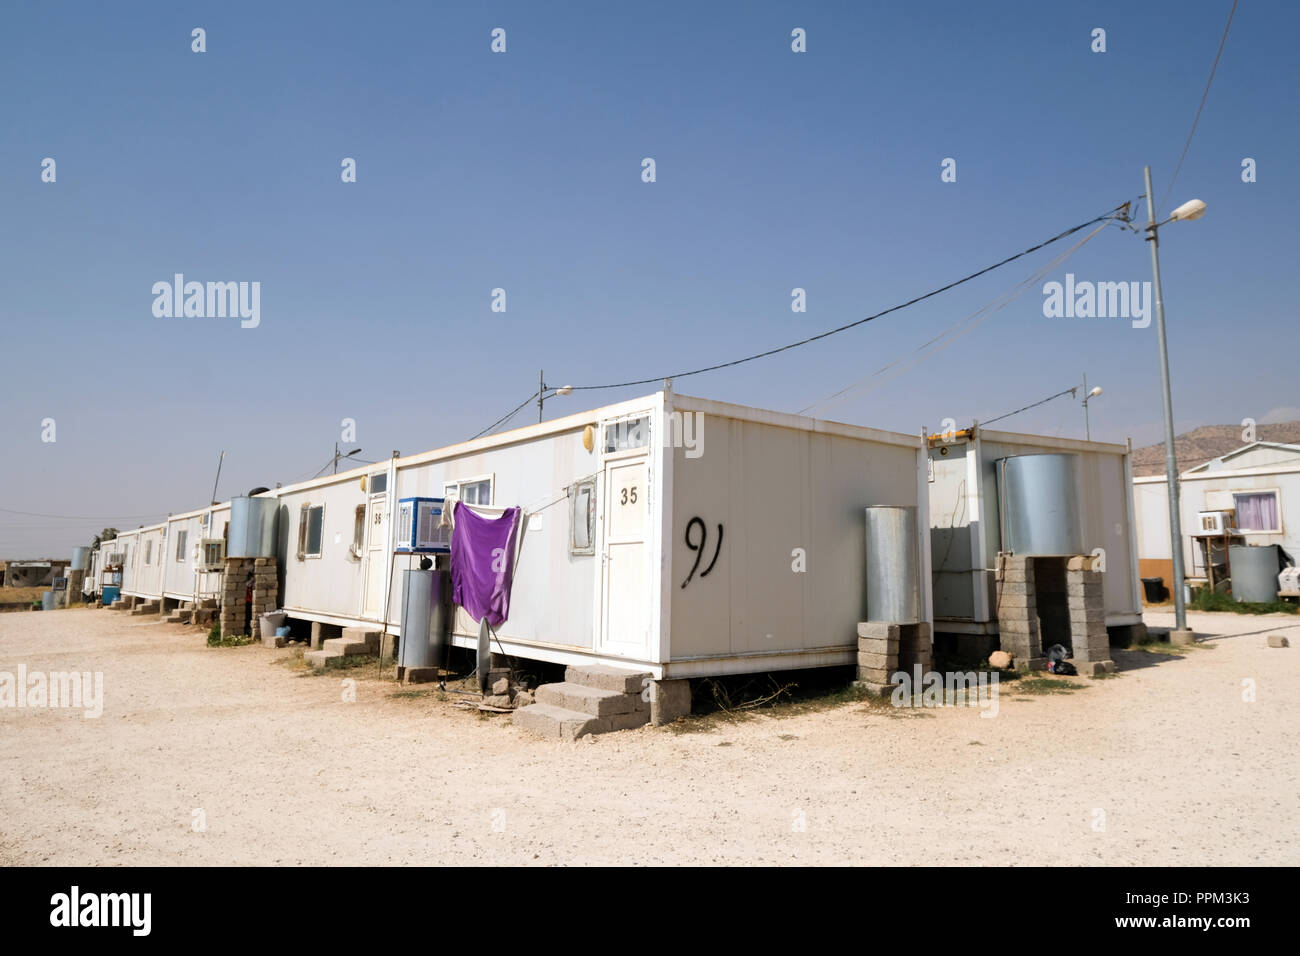 Container camp of Christian refugees in Seji, Iraq, Kurdistan Region - Containercamp christlicher Flüchtlinge in Seji, Irak, Region  Kurdistan - Stock Image